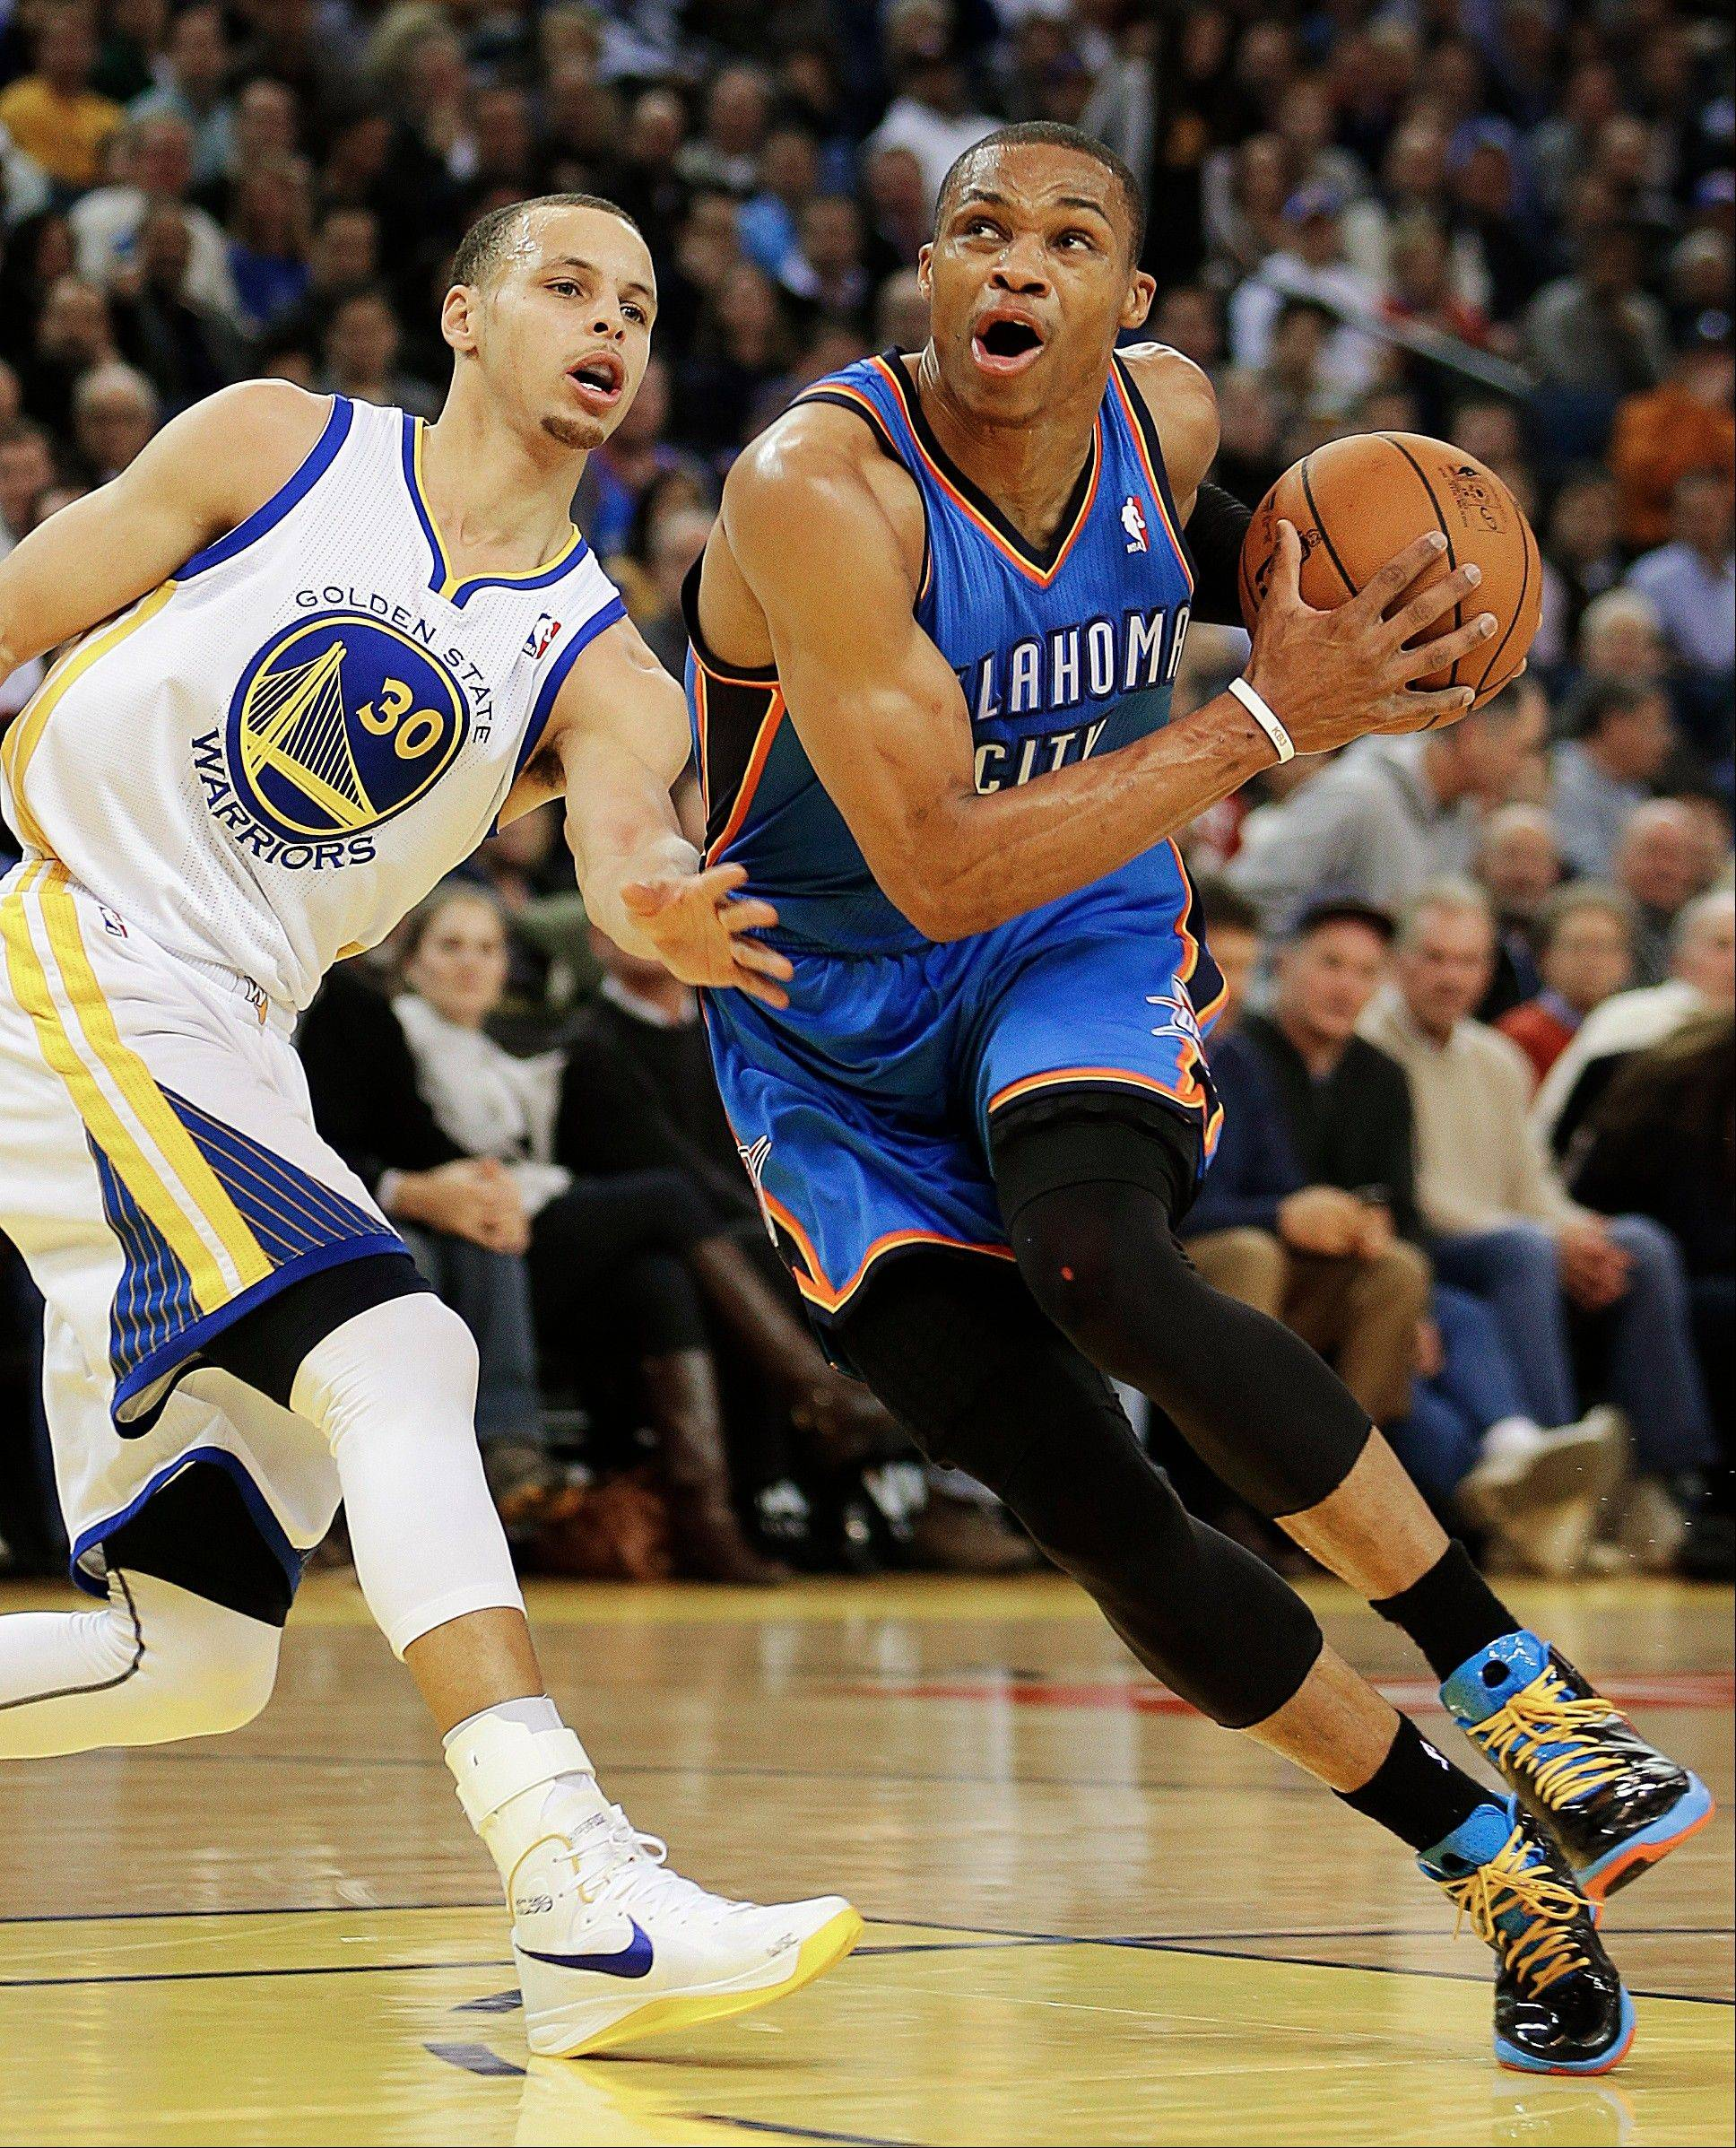 Oklahoma City Thunder's Russell Westbrook, right, drives past Golden State Warriors' Stephen Curry (30) during the first half of an NBA basketball game, Wednesday, Jan. 23, 2013, in Oakland, Calif.